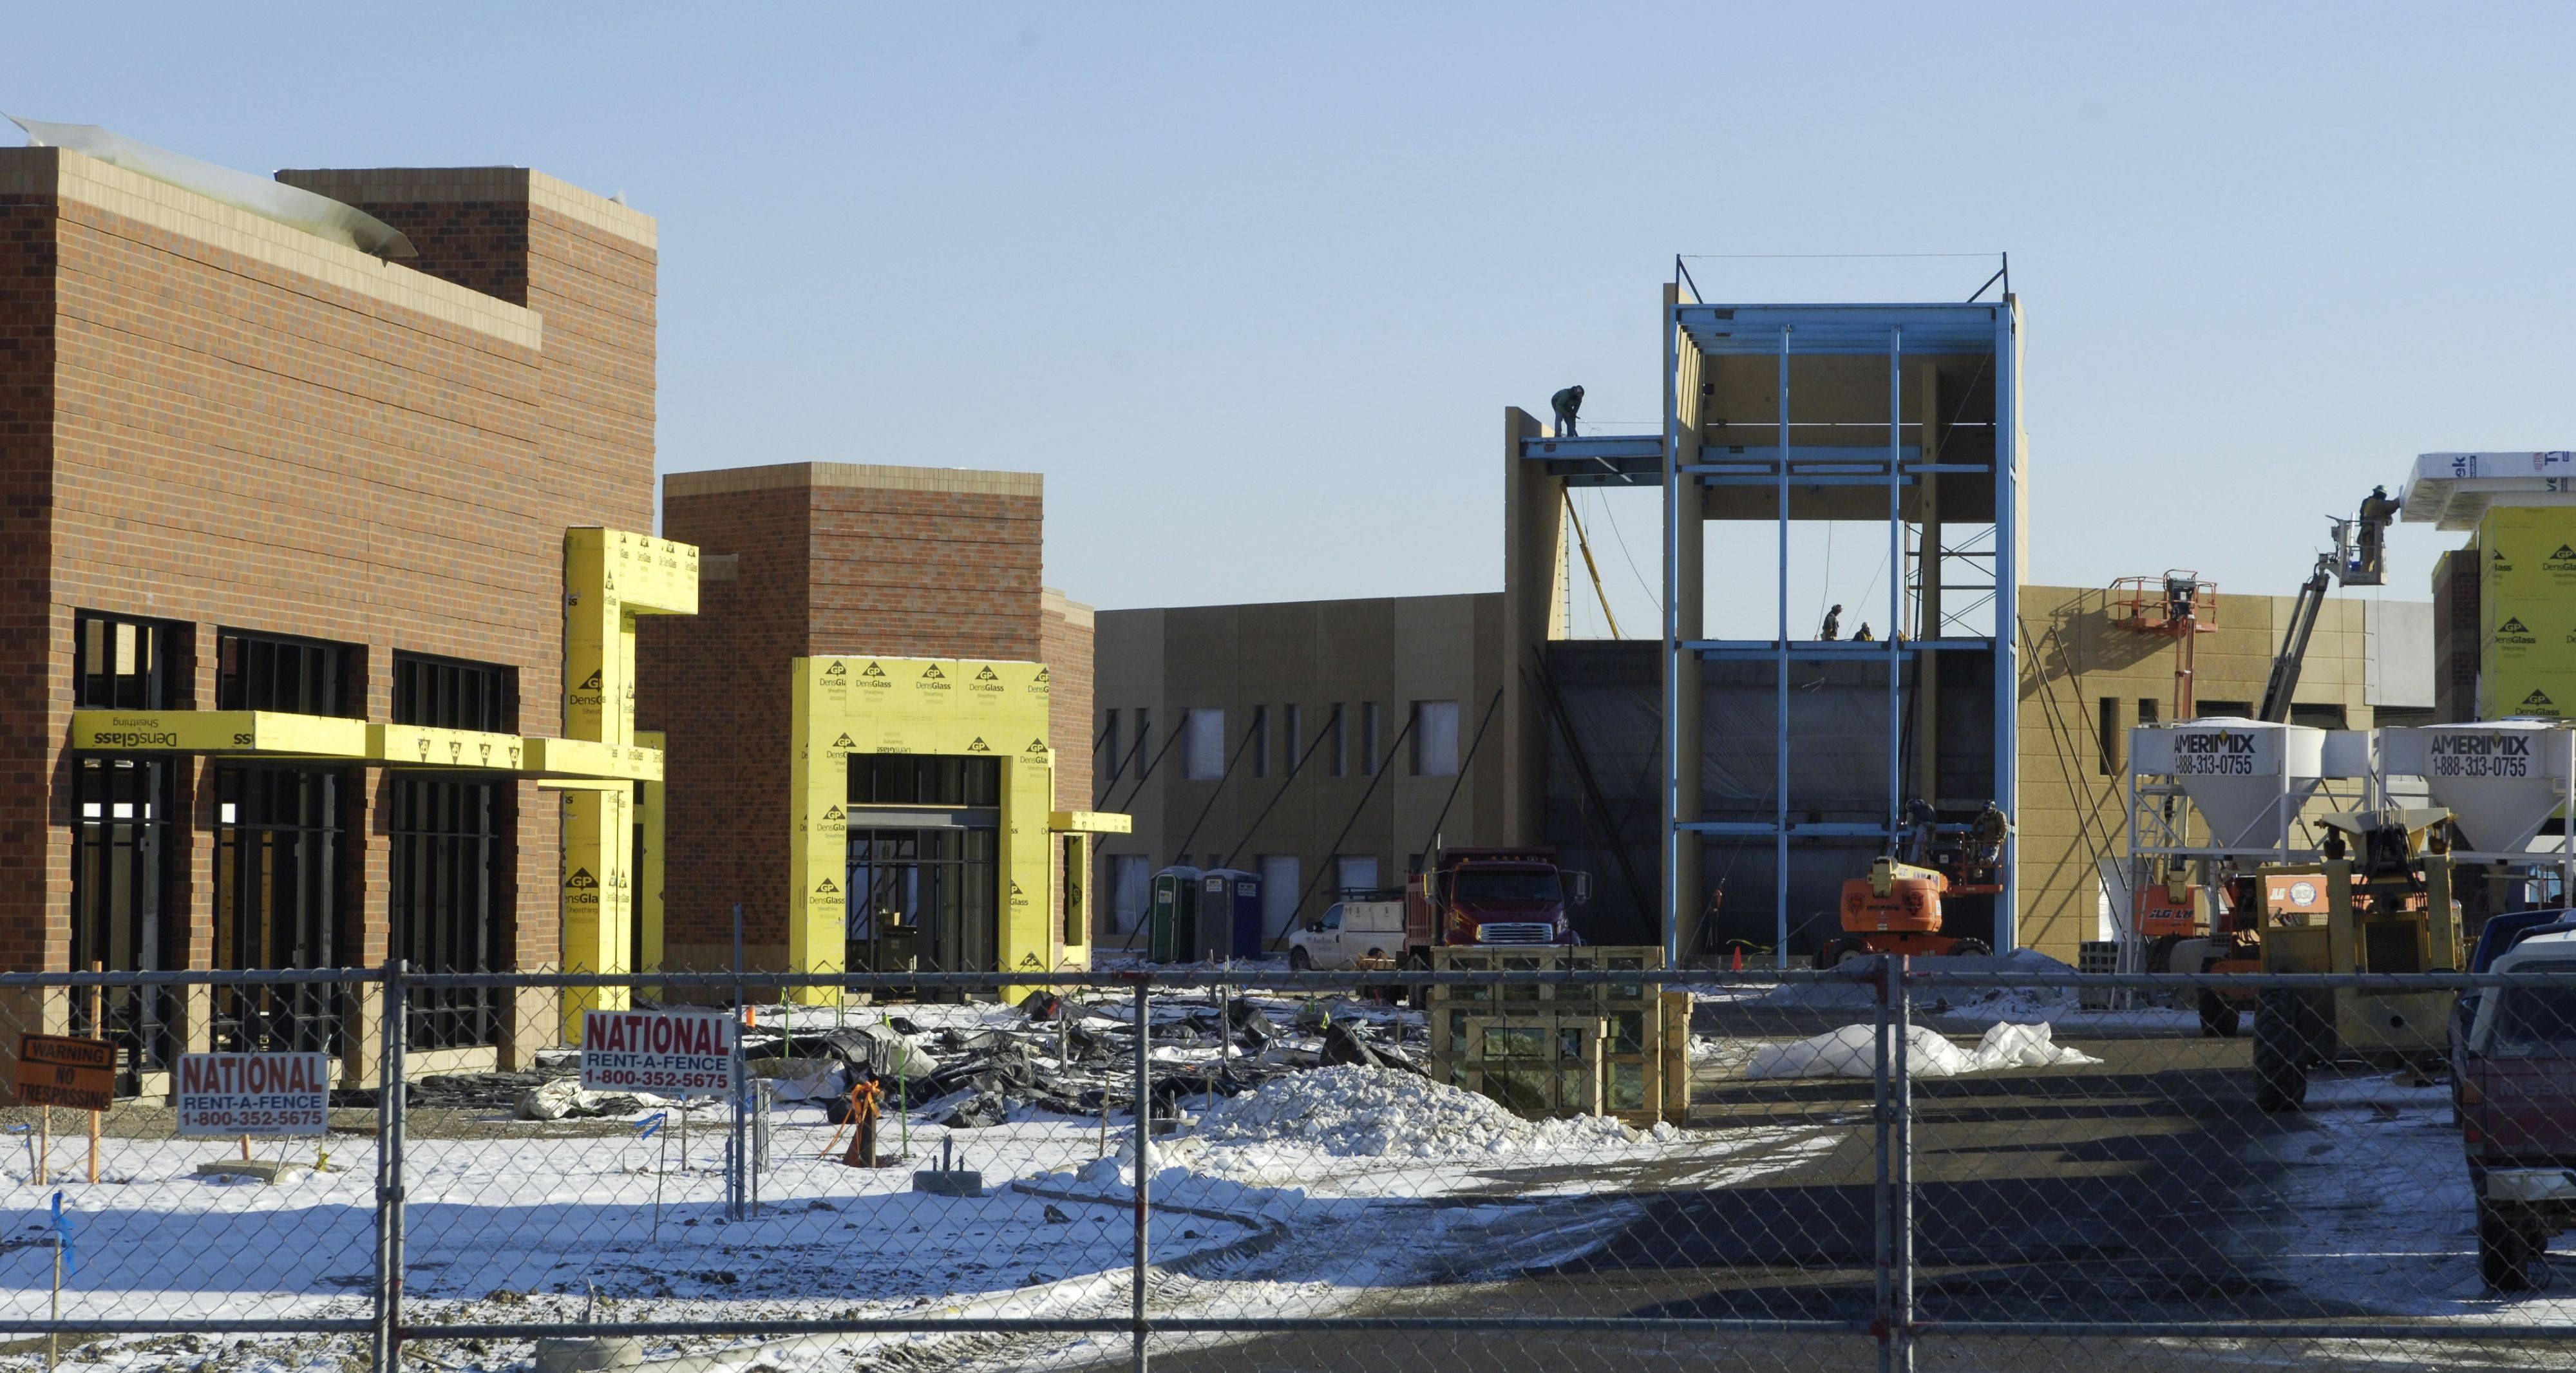 Randhurst Village in Mount Prospect, a mixed-use lifestyle center with retail, restaurant, theater, hotel and office space, is on track to open in spring 2011. The revamped center is expected to generate more than $4.5 million in sales tax revenue for Mount Prospect.